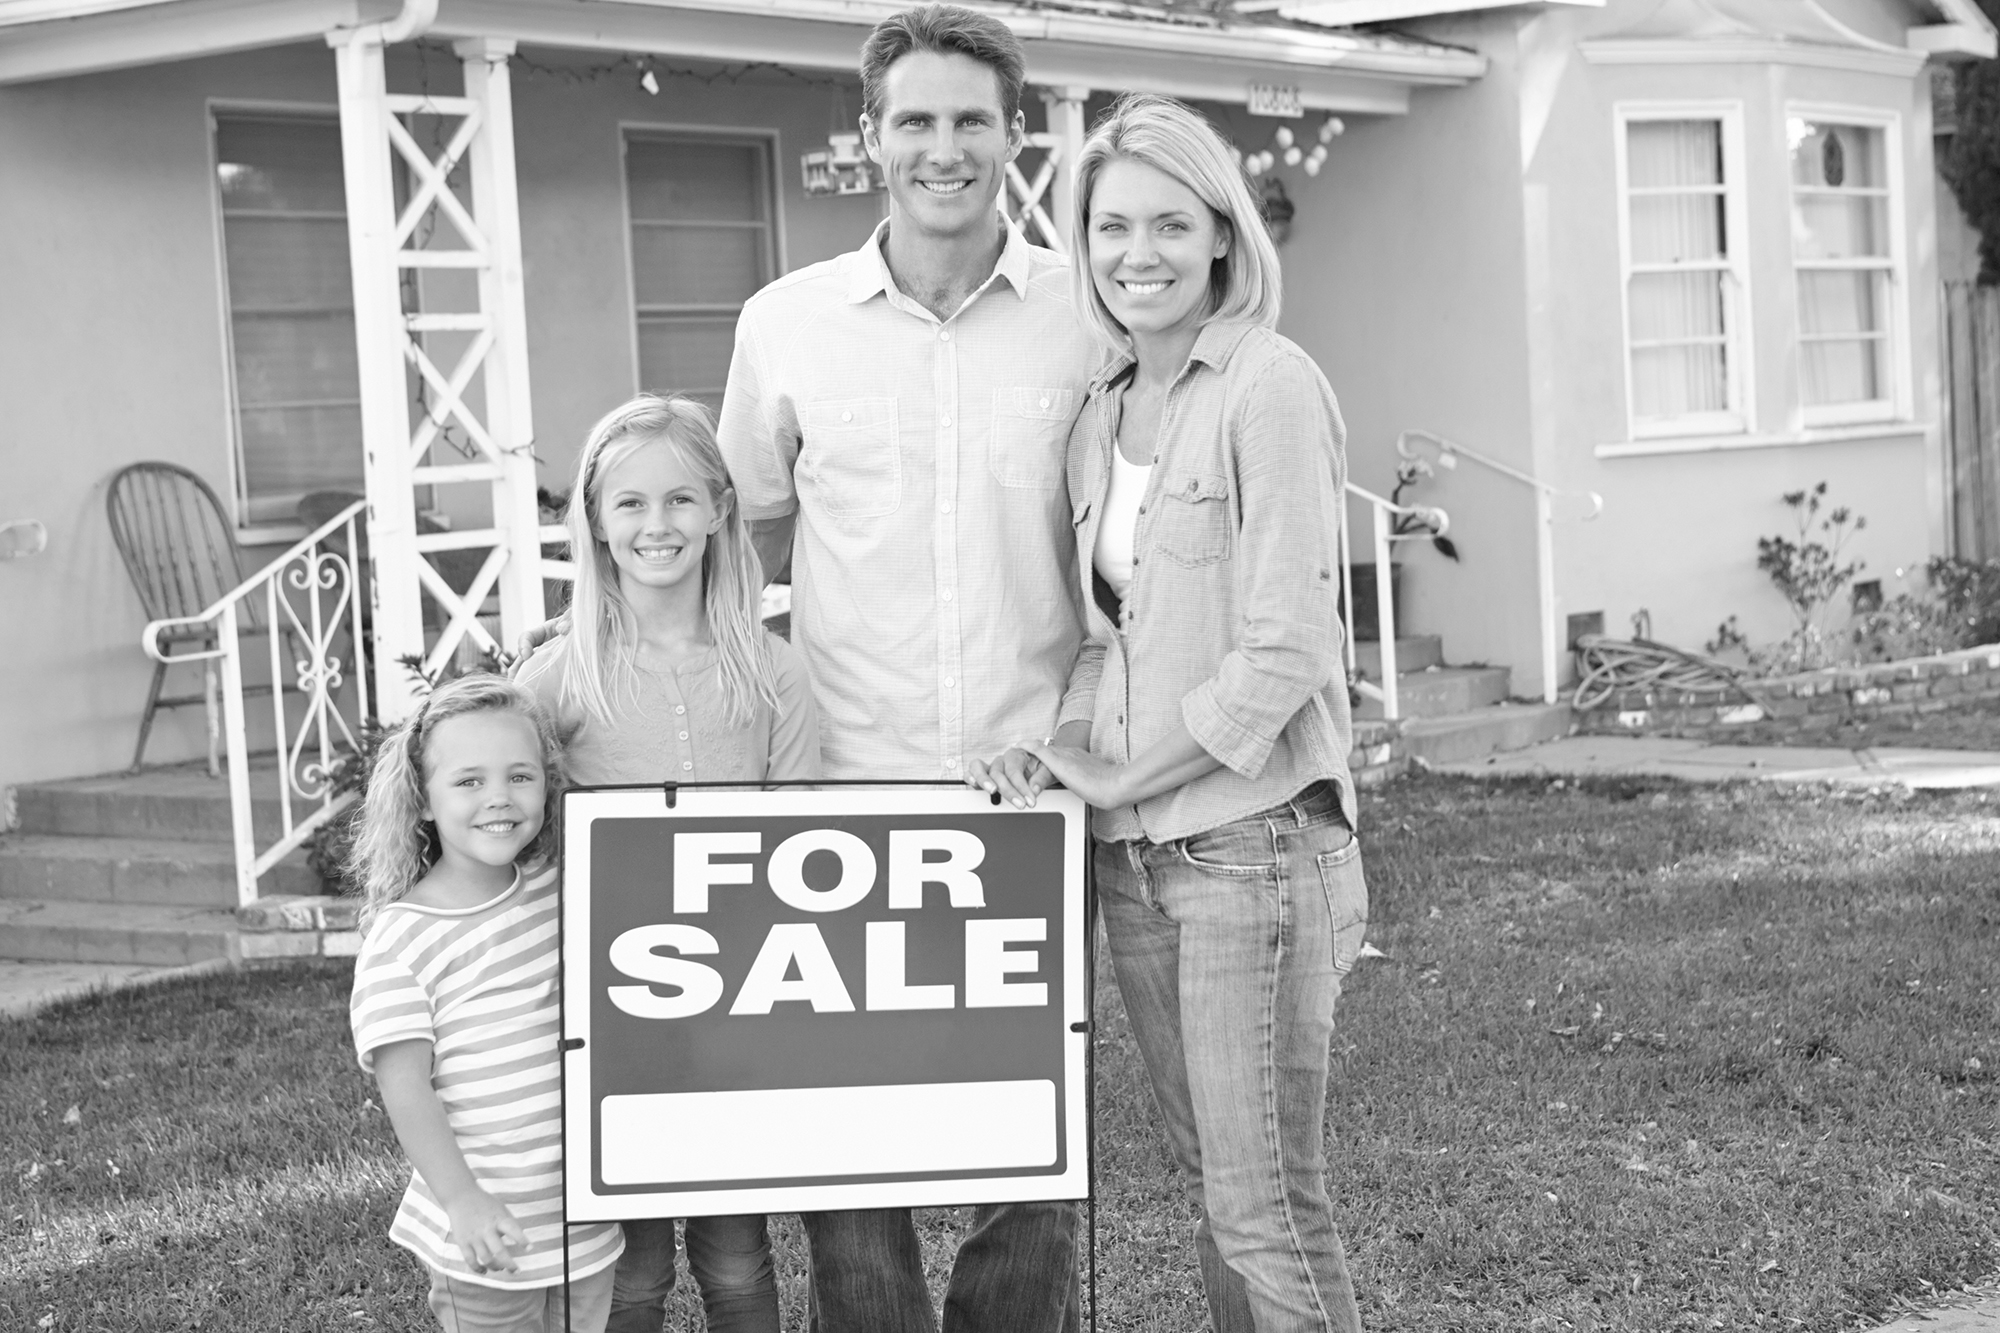 Image of family standing by for sale sign outside home